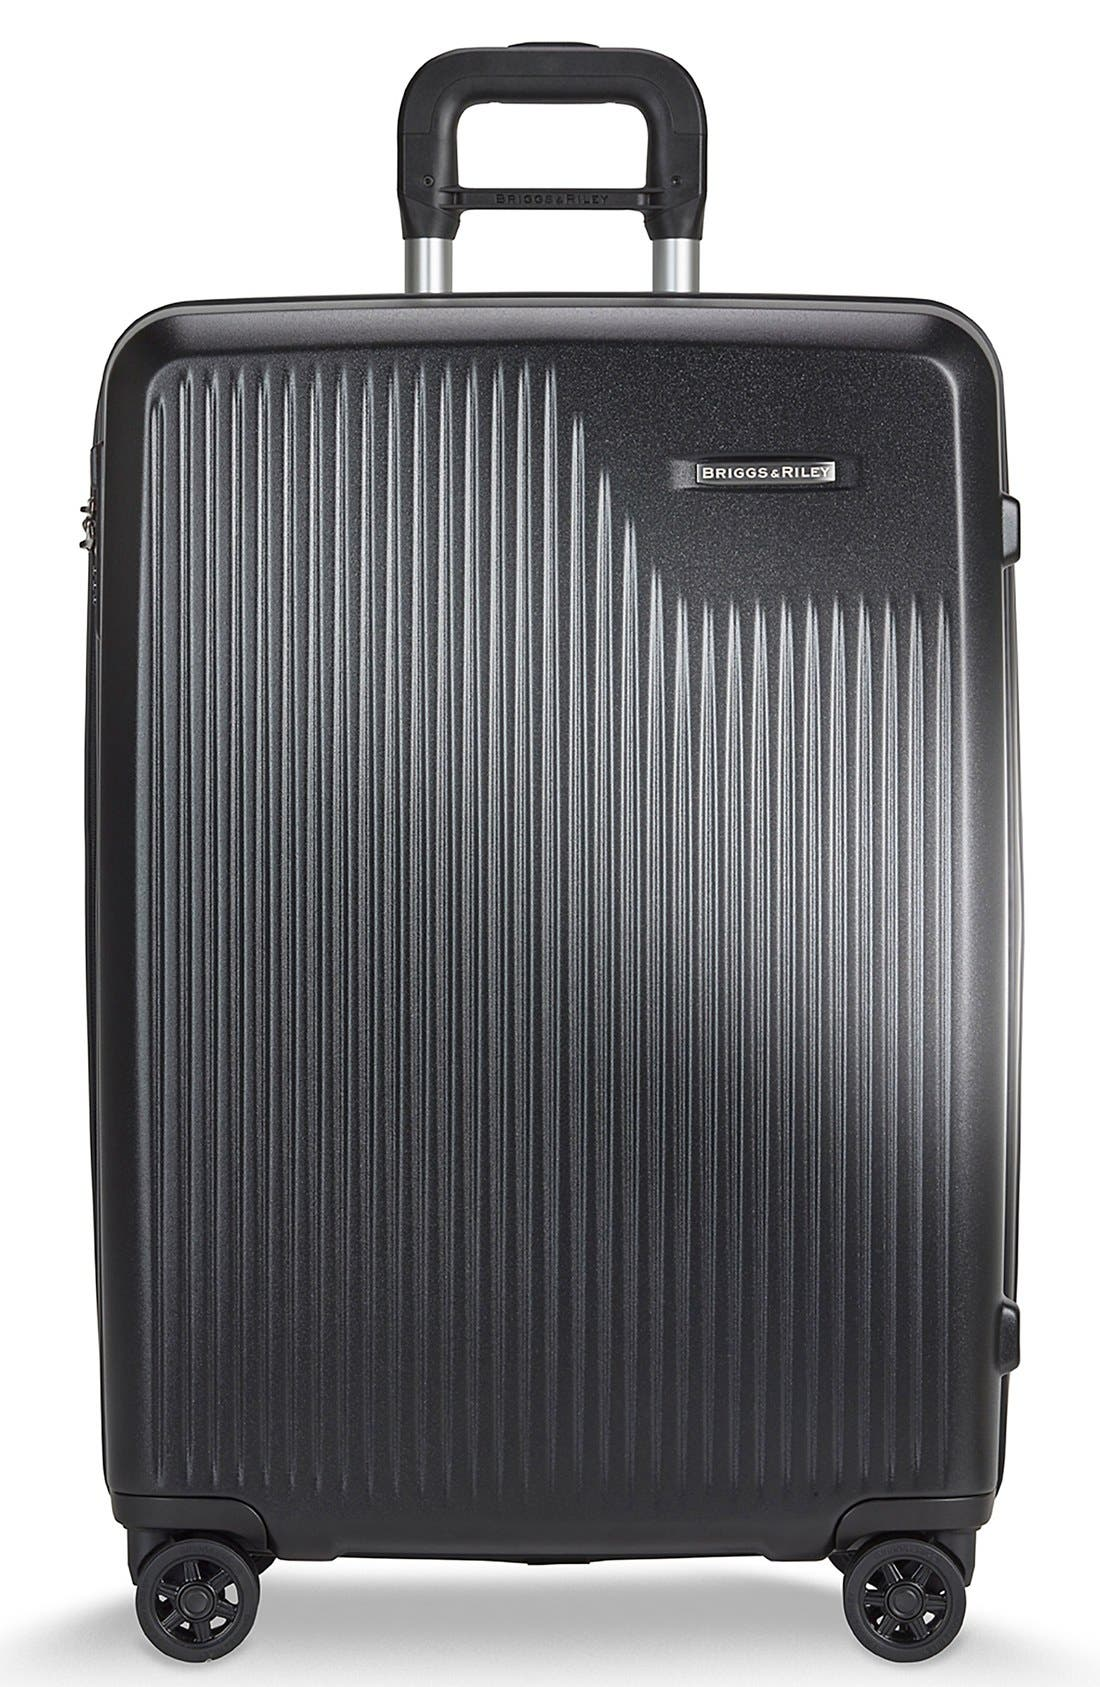 Alternate Image 1 Selected - Briggs & Riley 'Sympatico' Expandable Wheeled Packing Case (27 Inch)